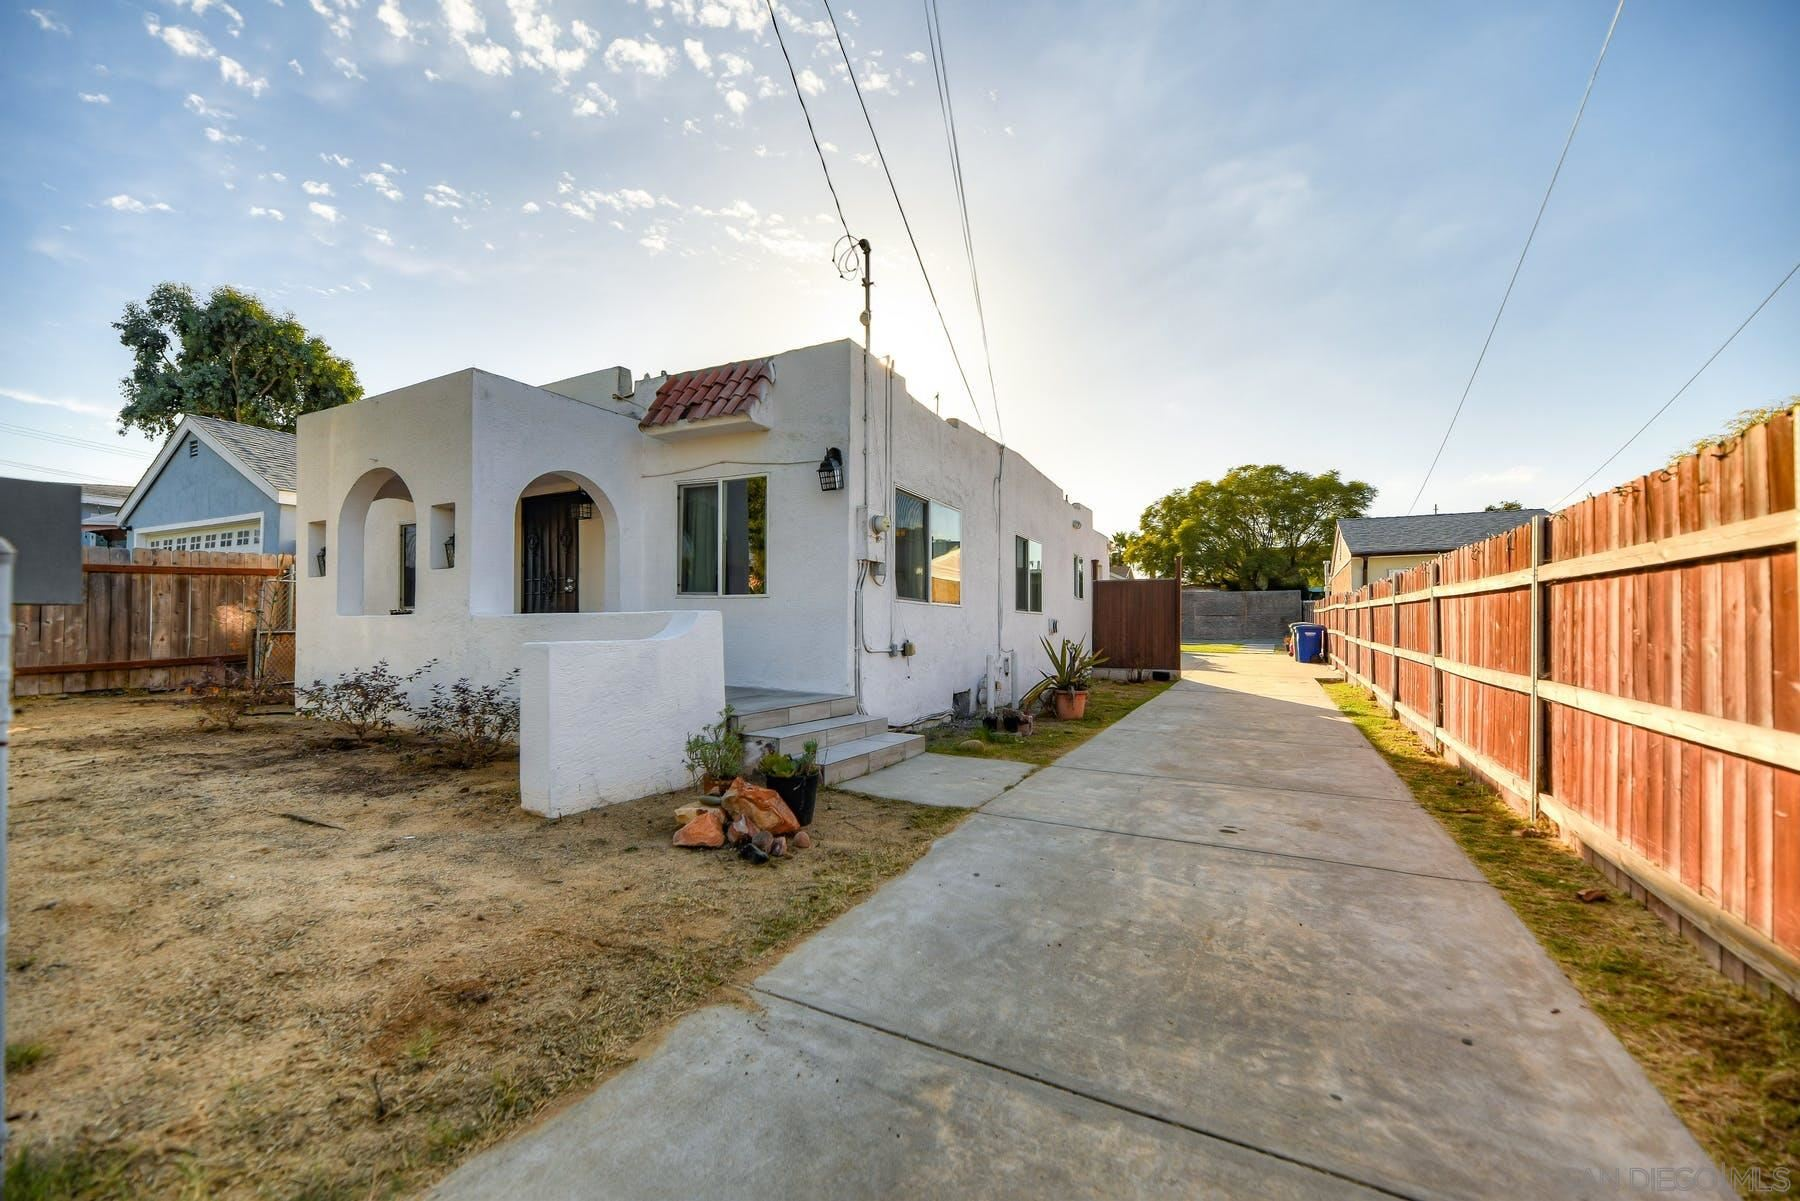 Photo of 524 K Ave, National City, CA 91950 (MLS # 200053916)